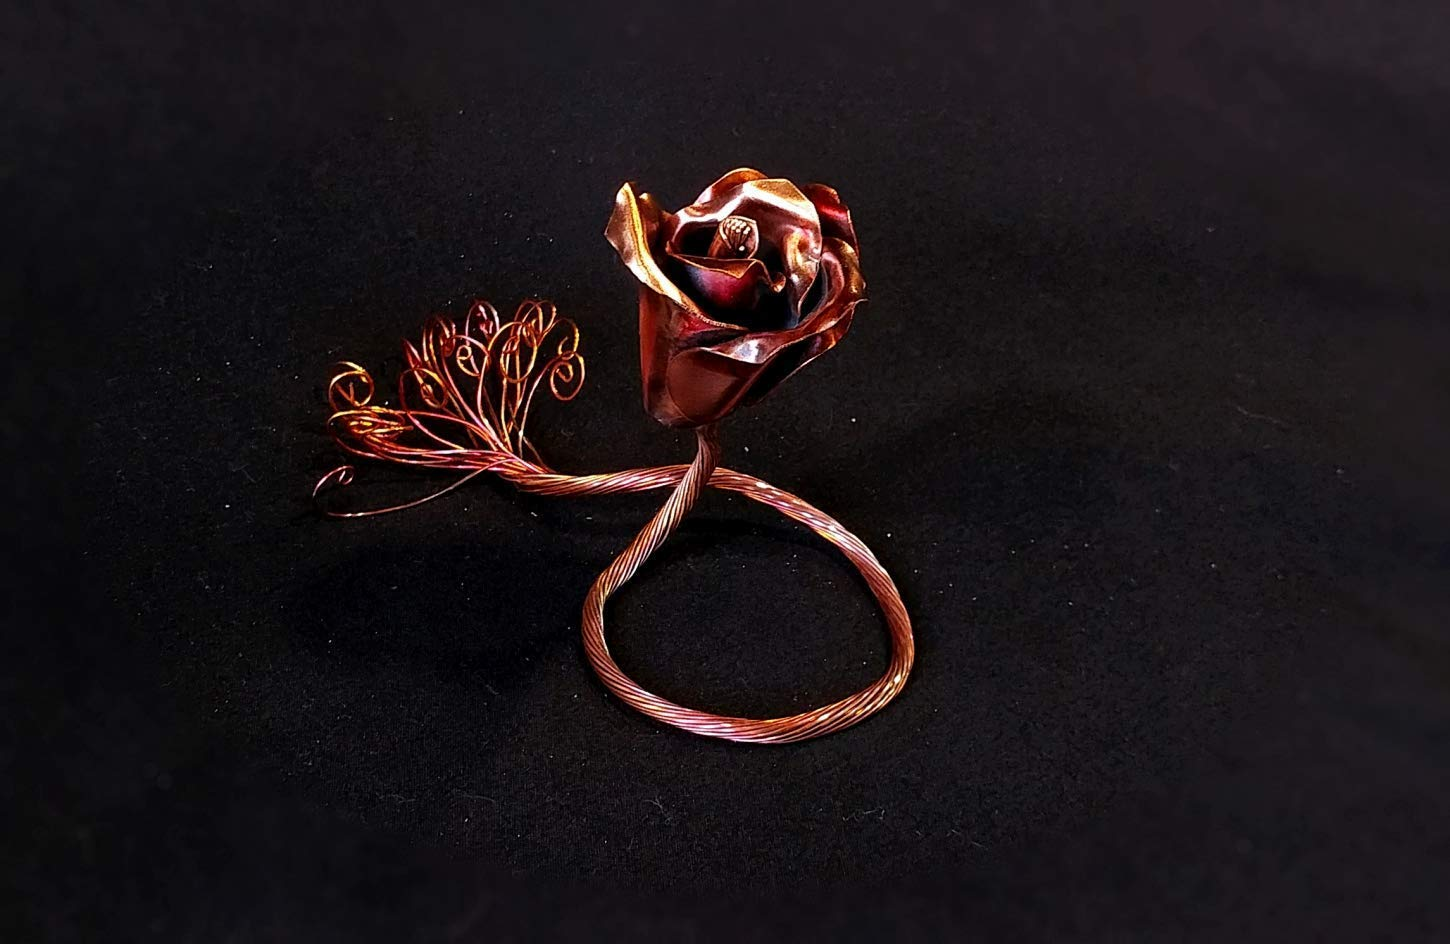 Copper Rose'' I Love You'' #1557 Steampunk Industrial birthday 7th Anniversary Unique Mother's Day Valentine's Day Christmas present